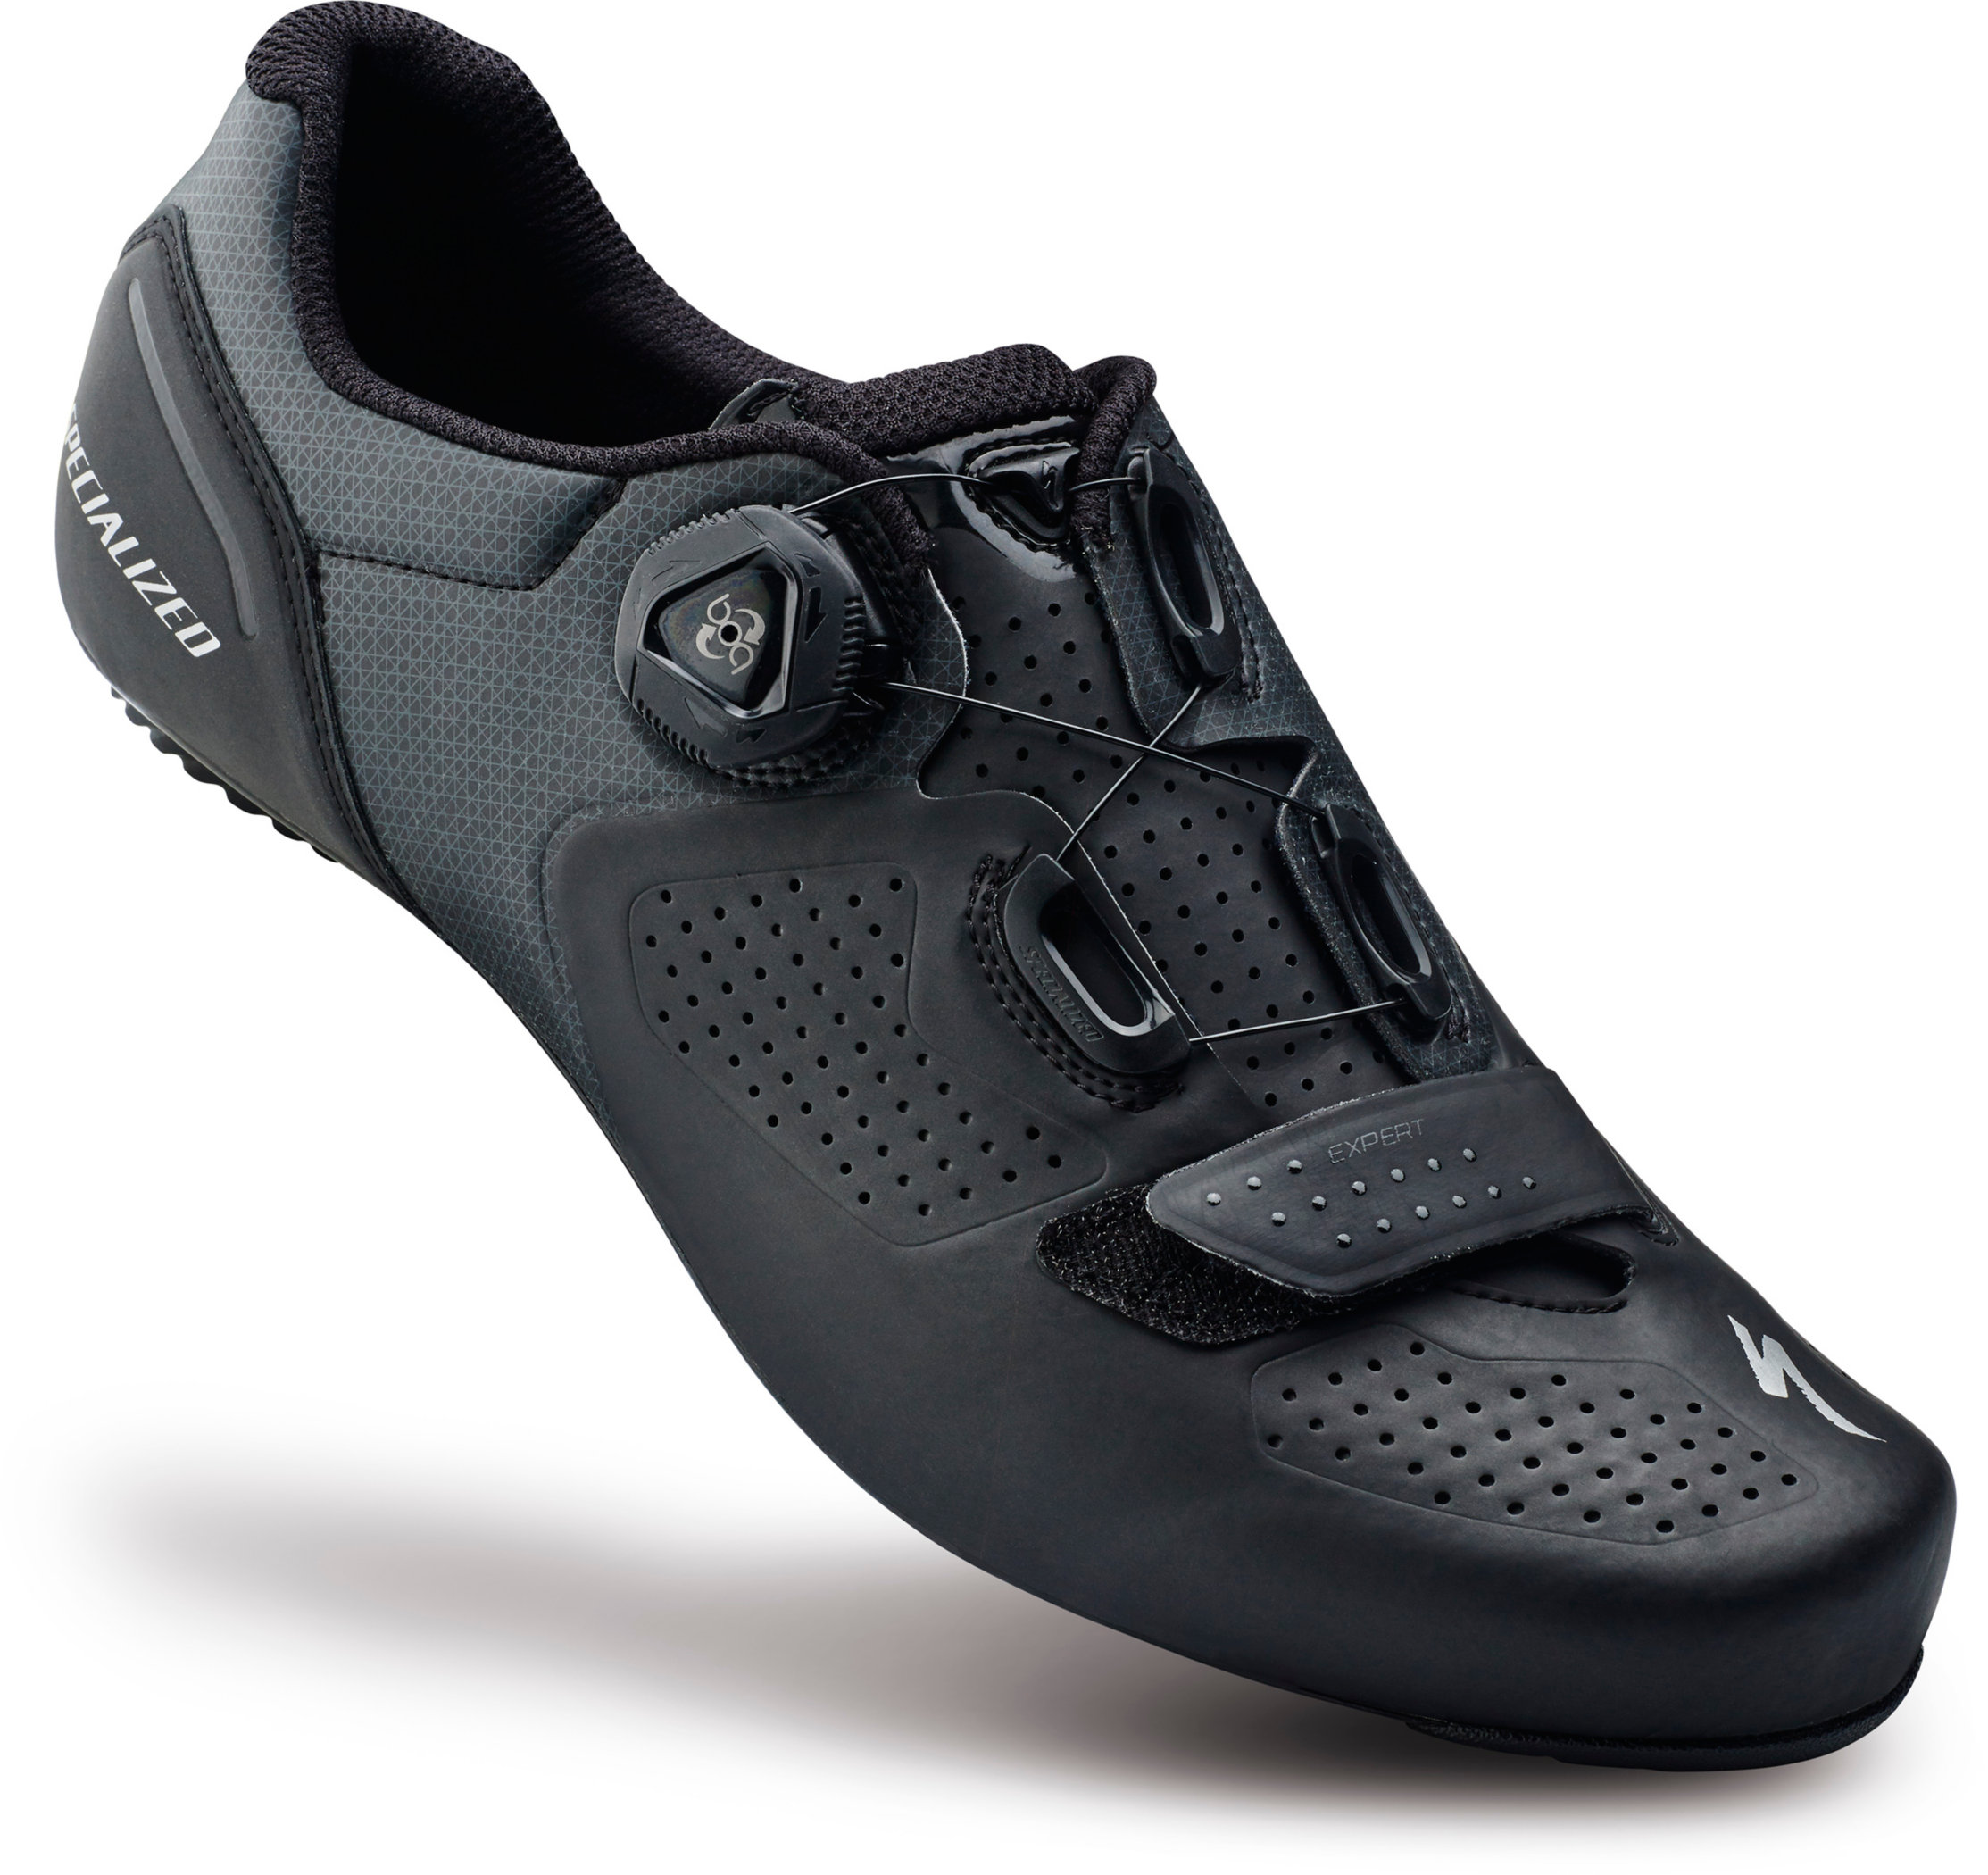 SPECIALIZED EXPERT RD SHOE BLK 47/13 - SPECIALIZED EXPERT RD SHOE BLK 47/13